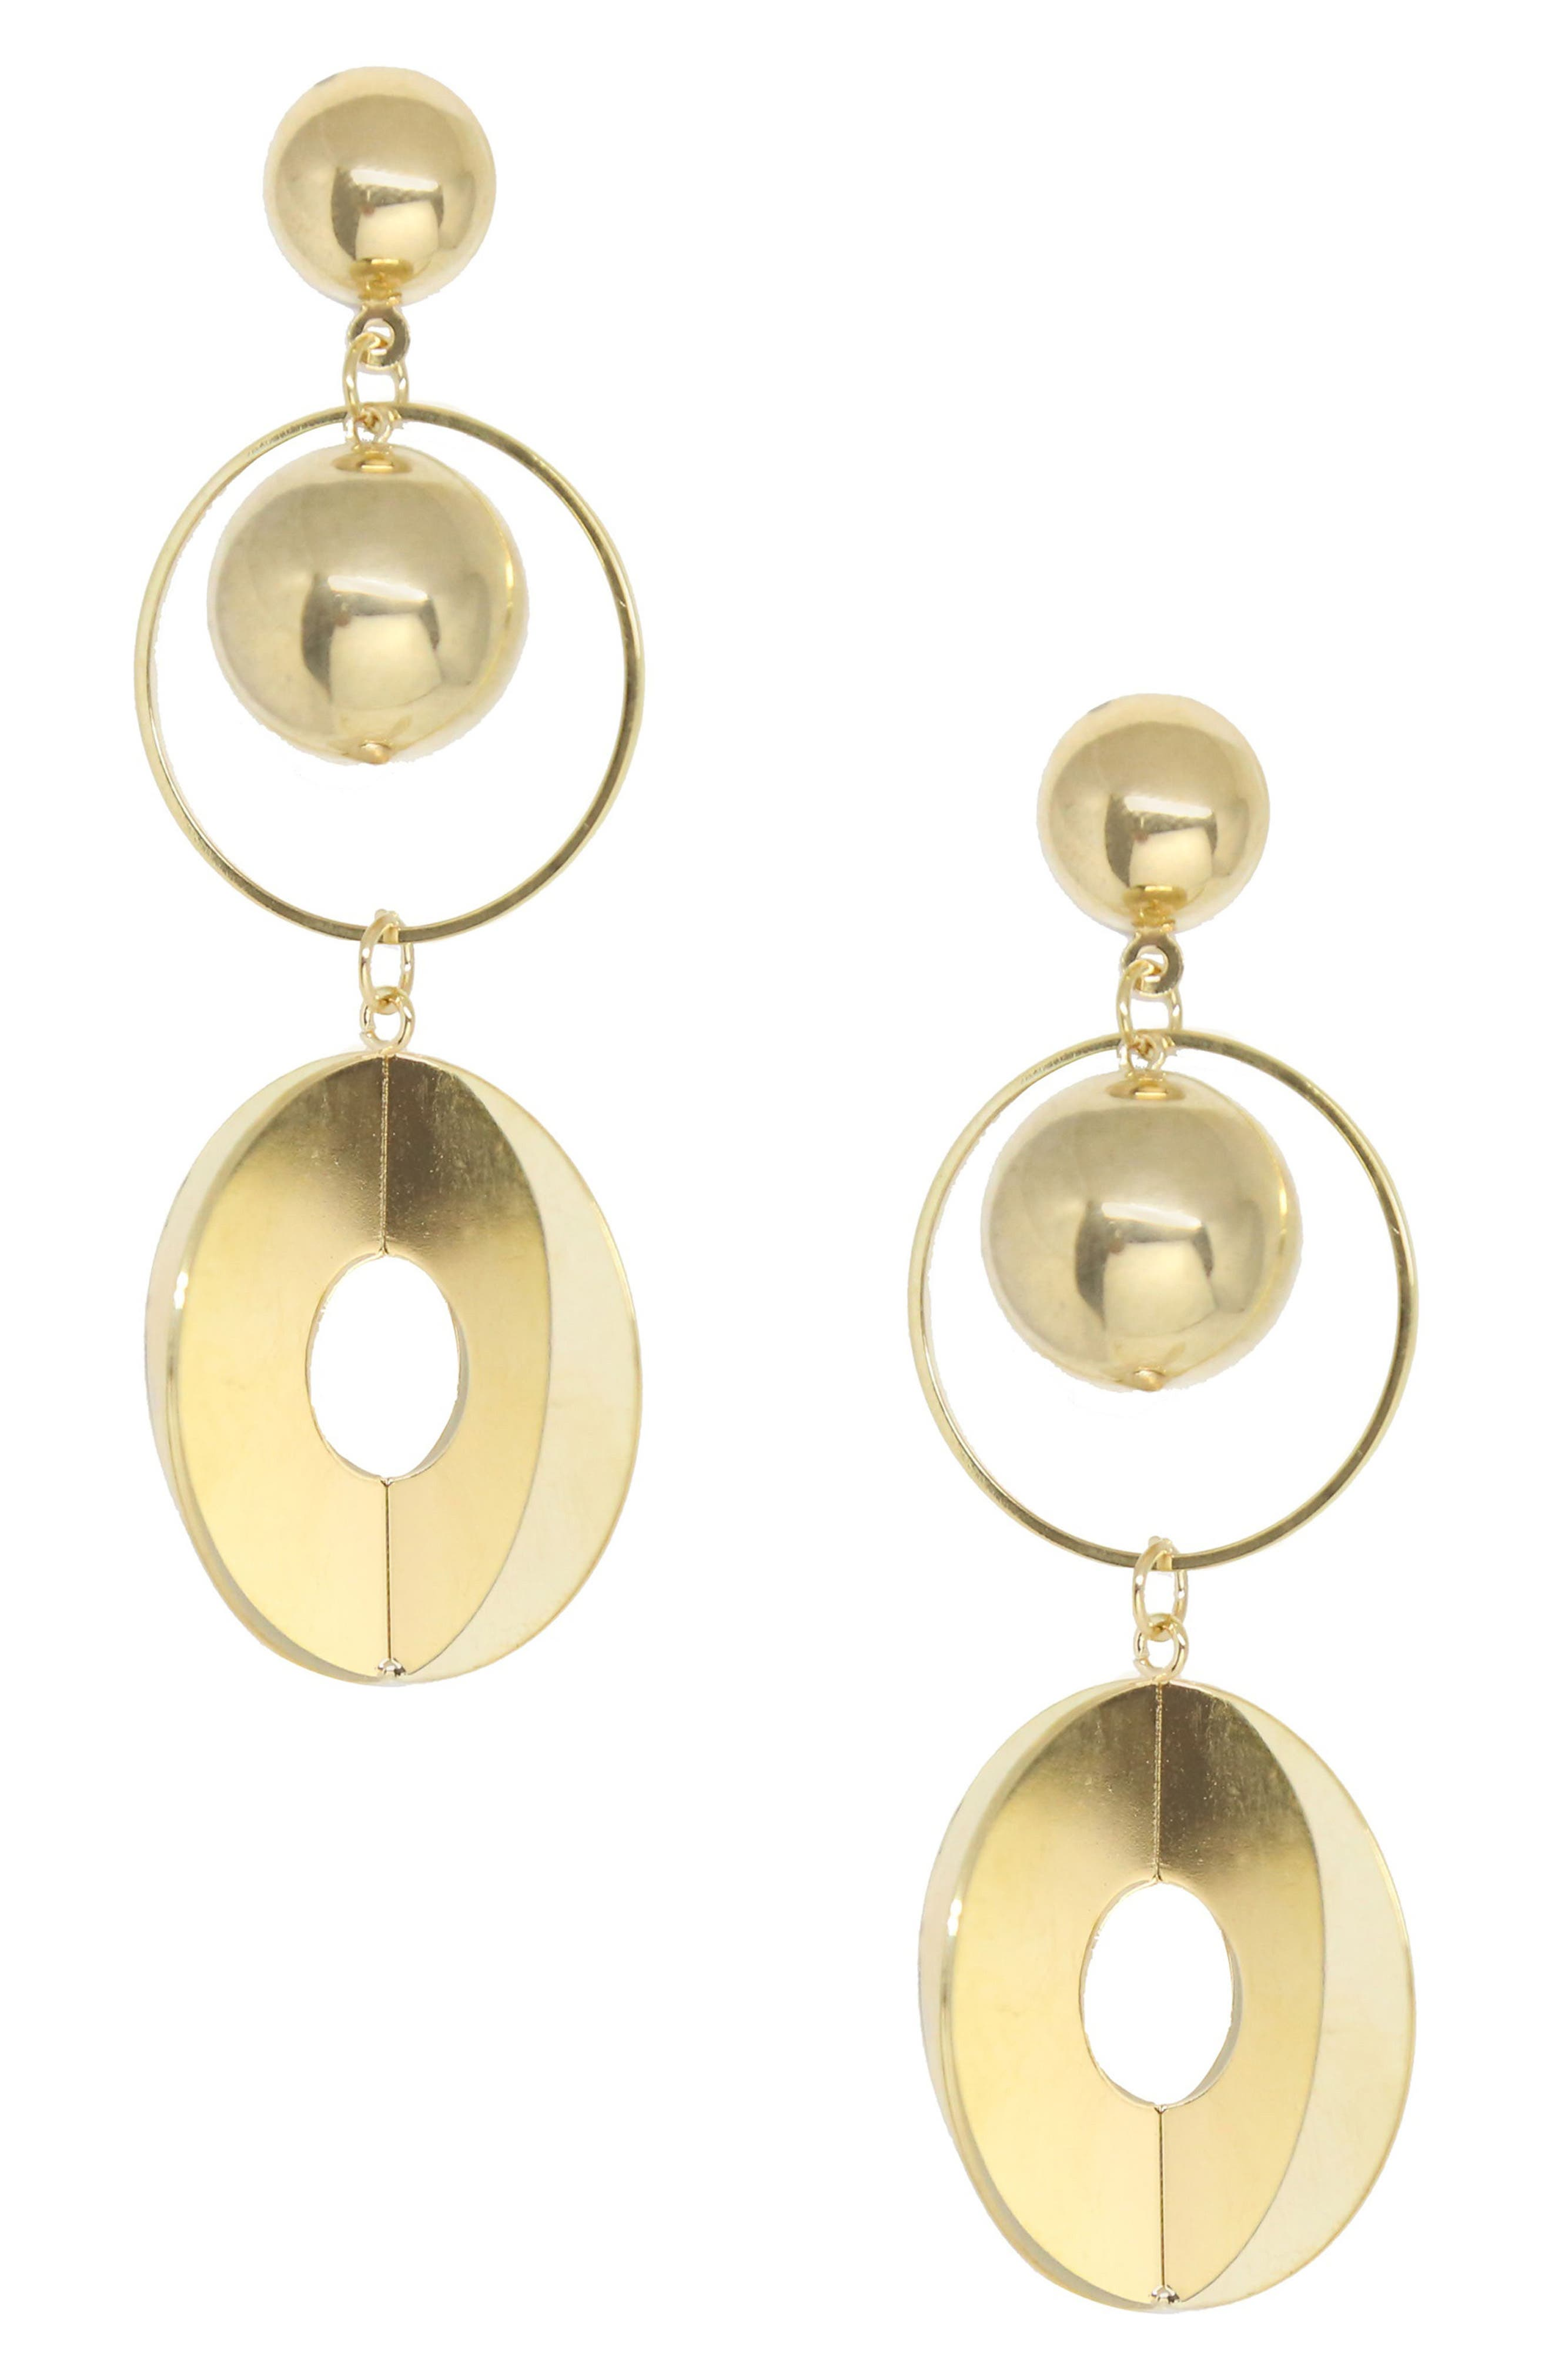 Gold Sphere Drop Earrings,                             Main thumbnail 1, color,                             Gold